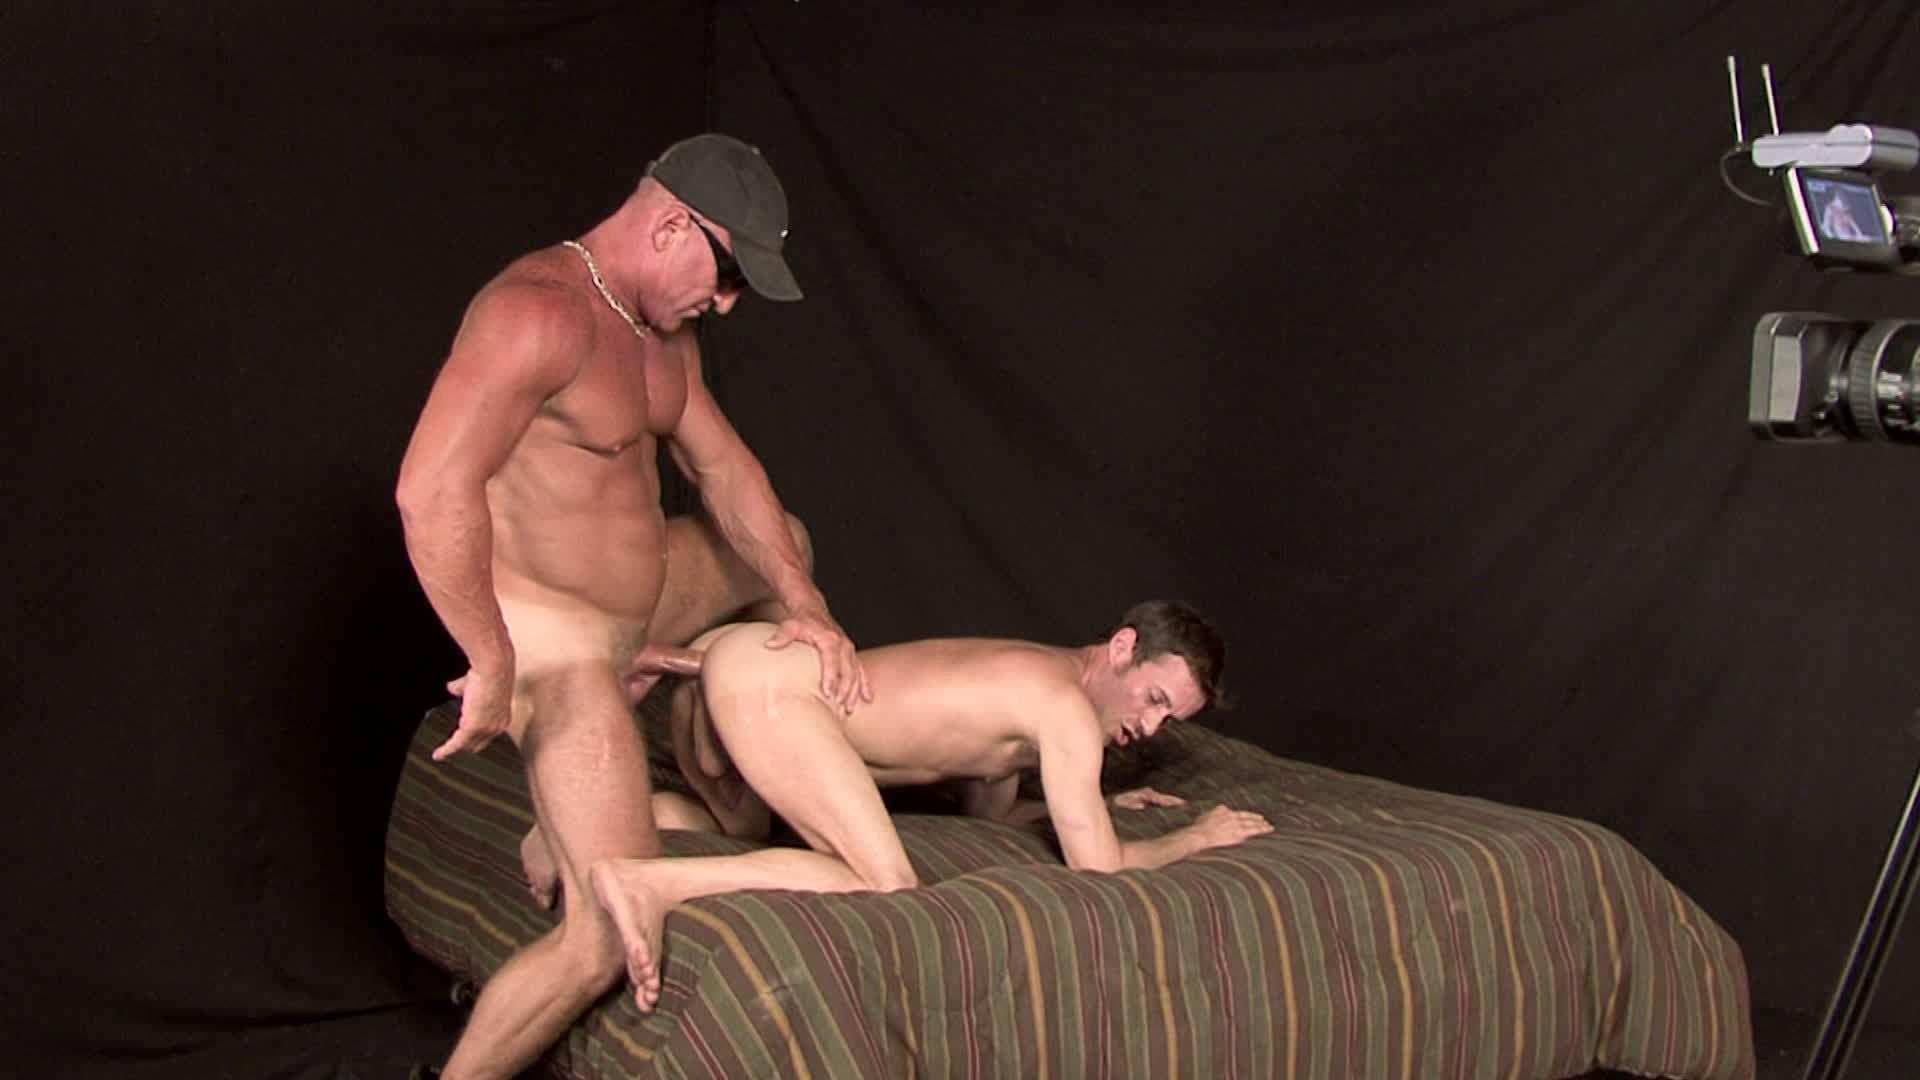 Gay military blow job aiden cannot stand 2